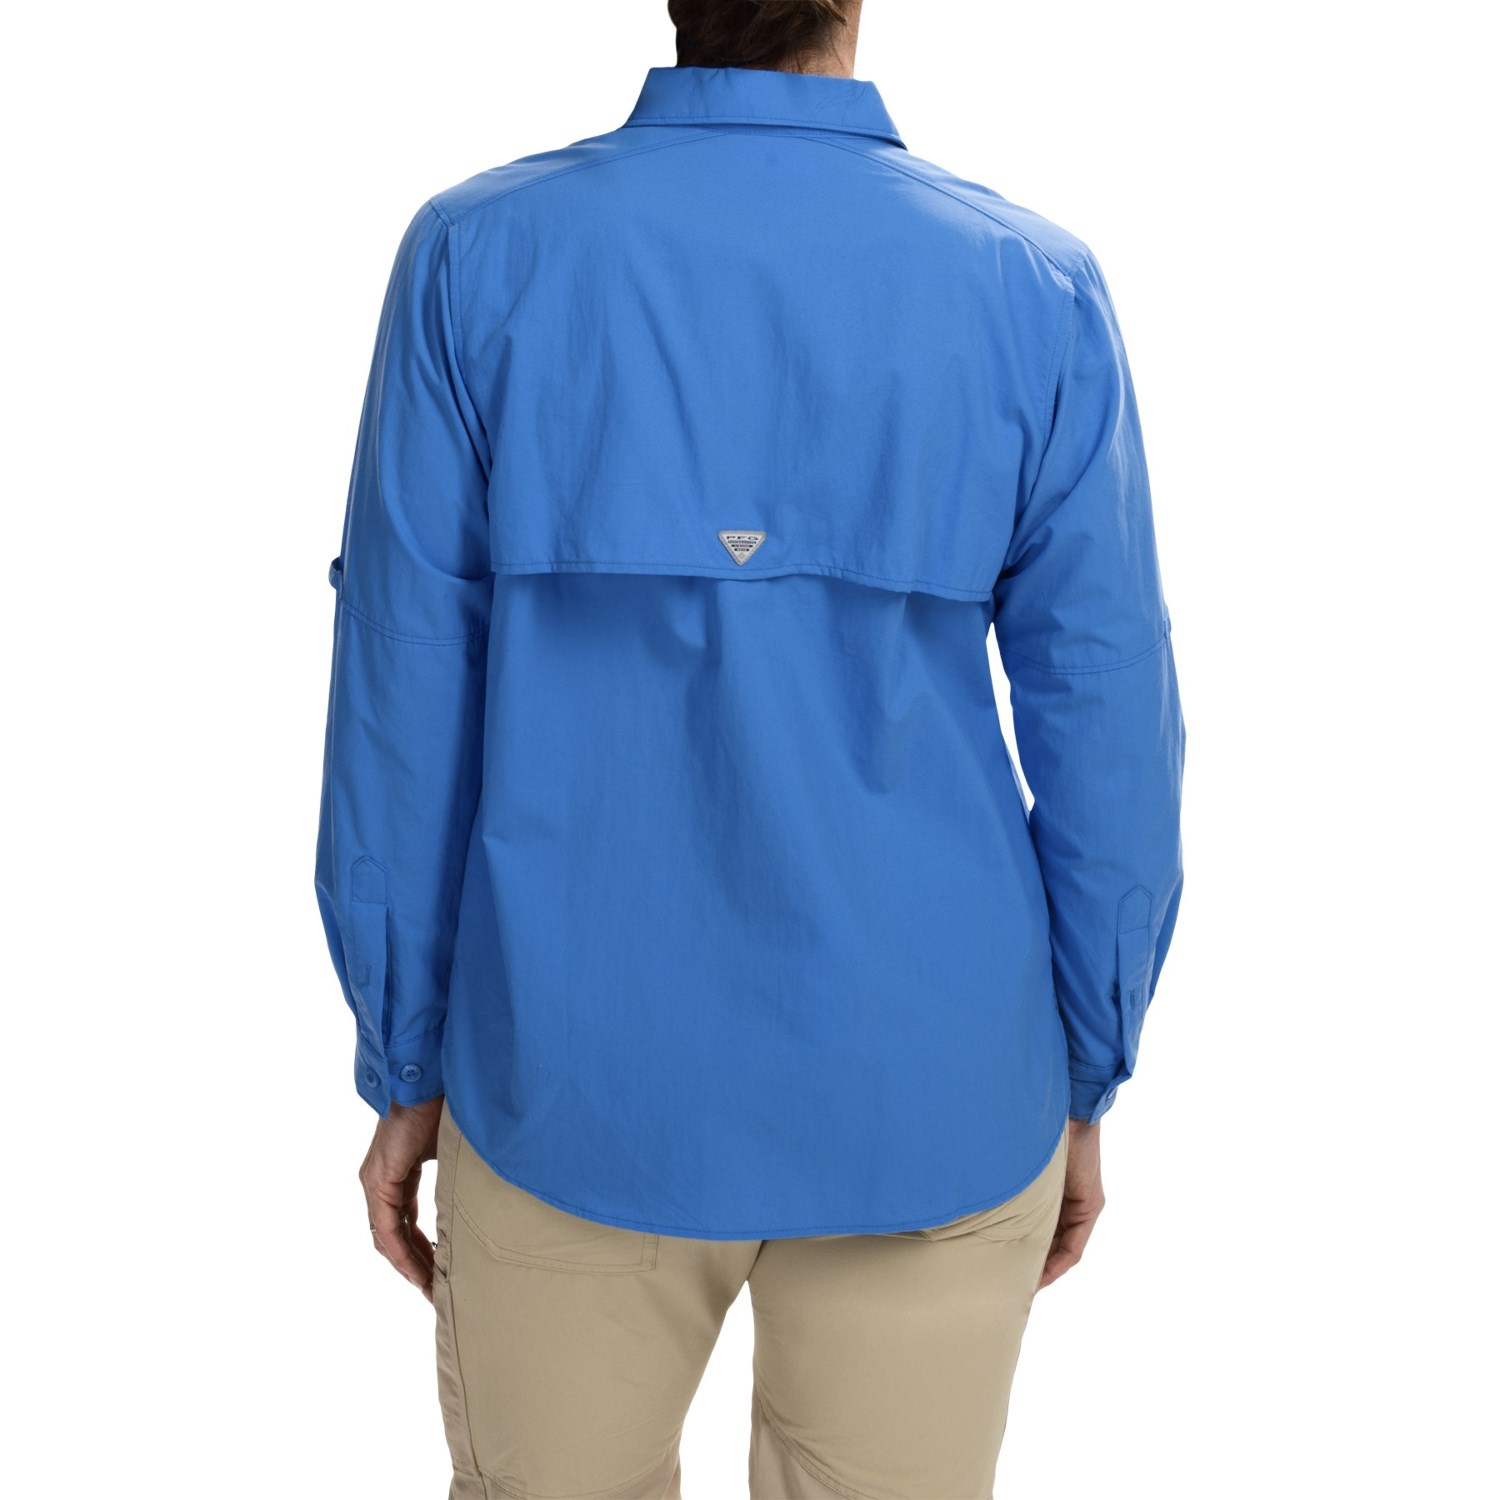 Columbia pfg womens taconic golf club for Columbia shirts womens pfg